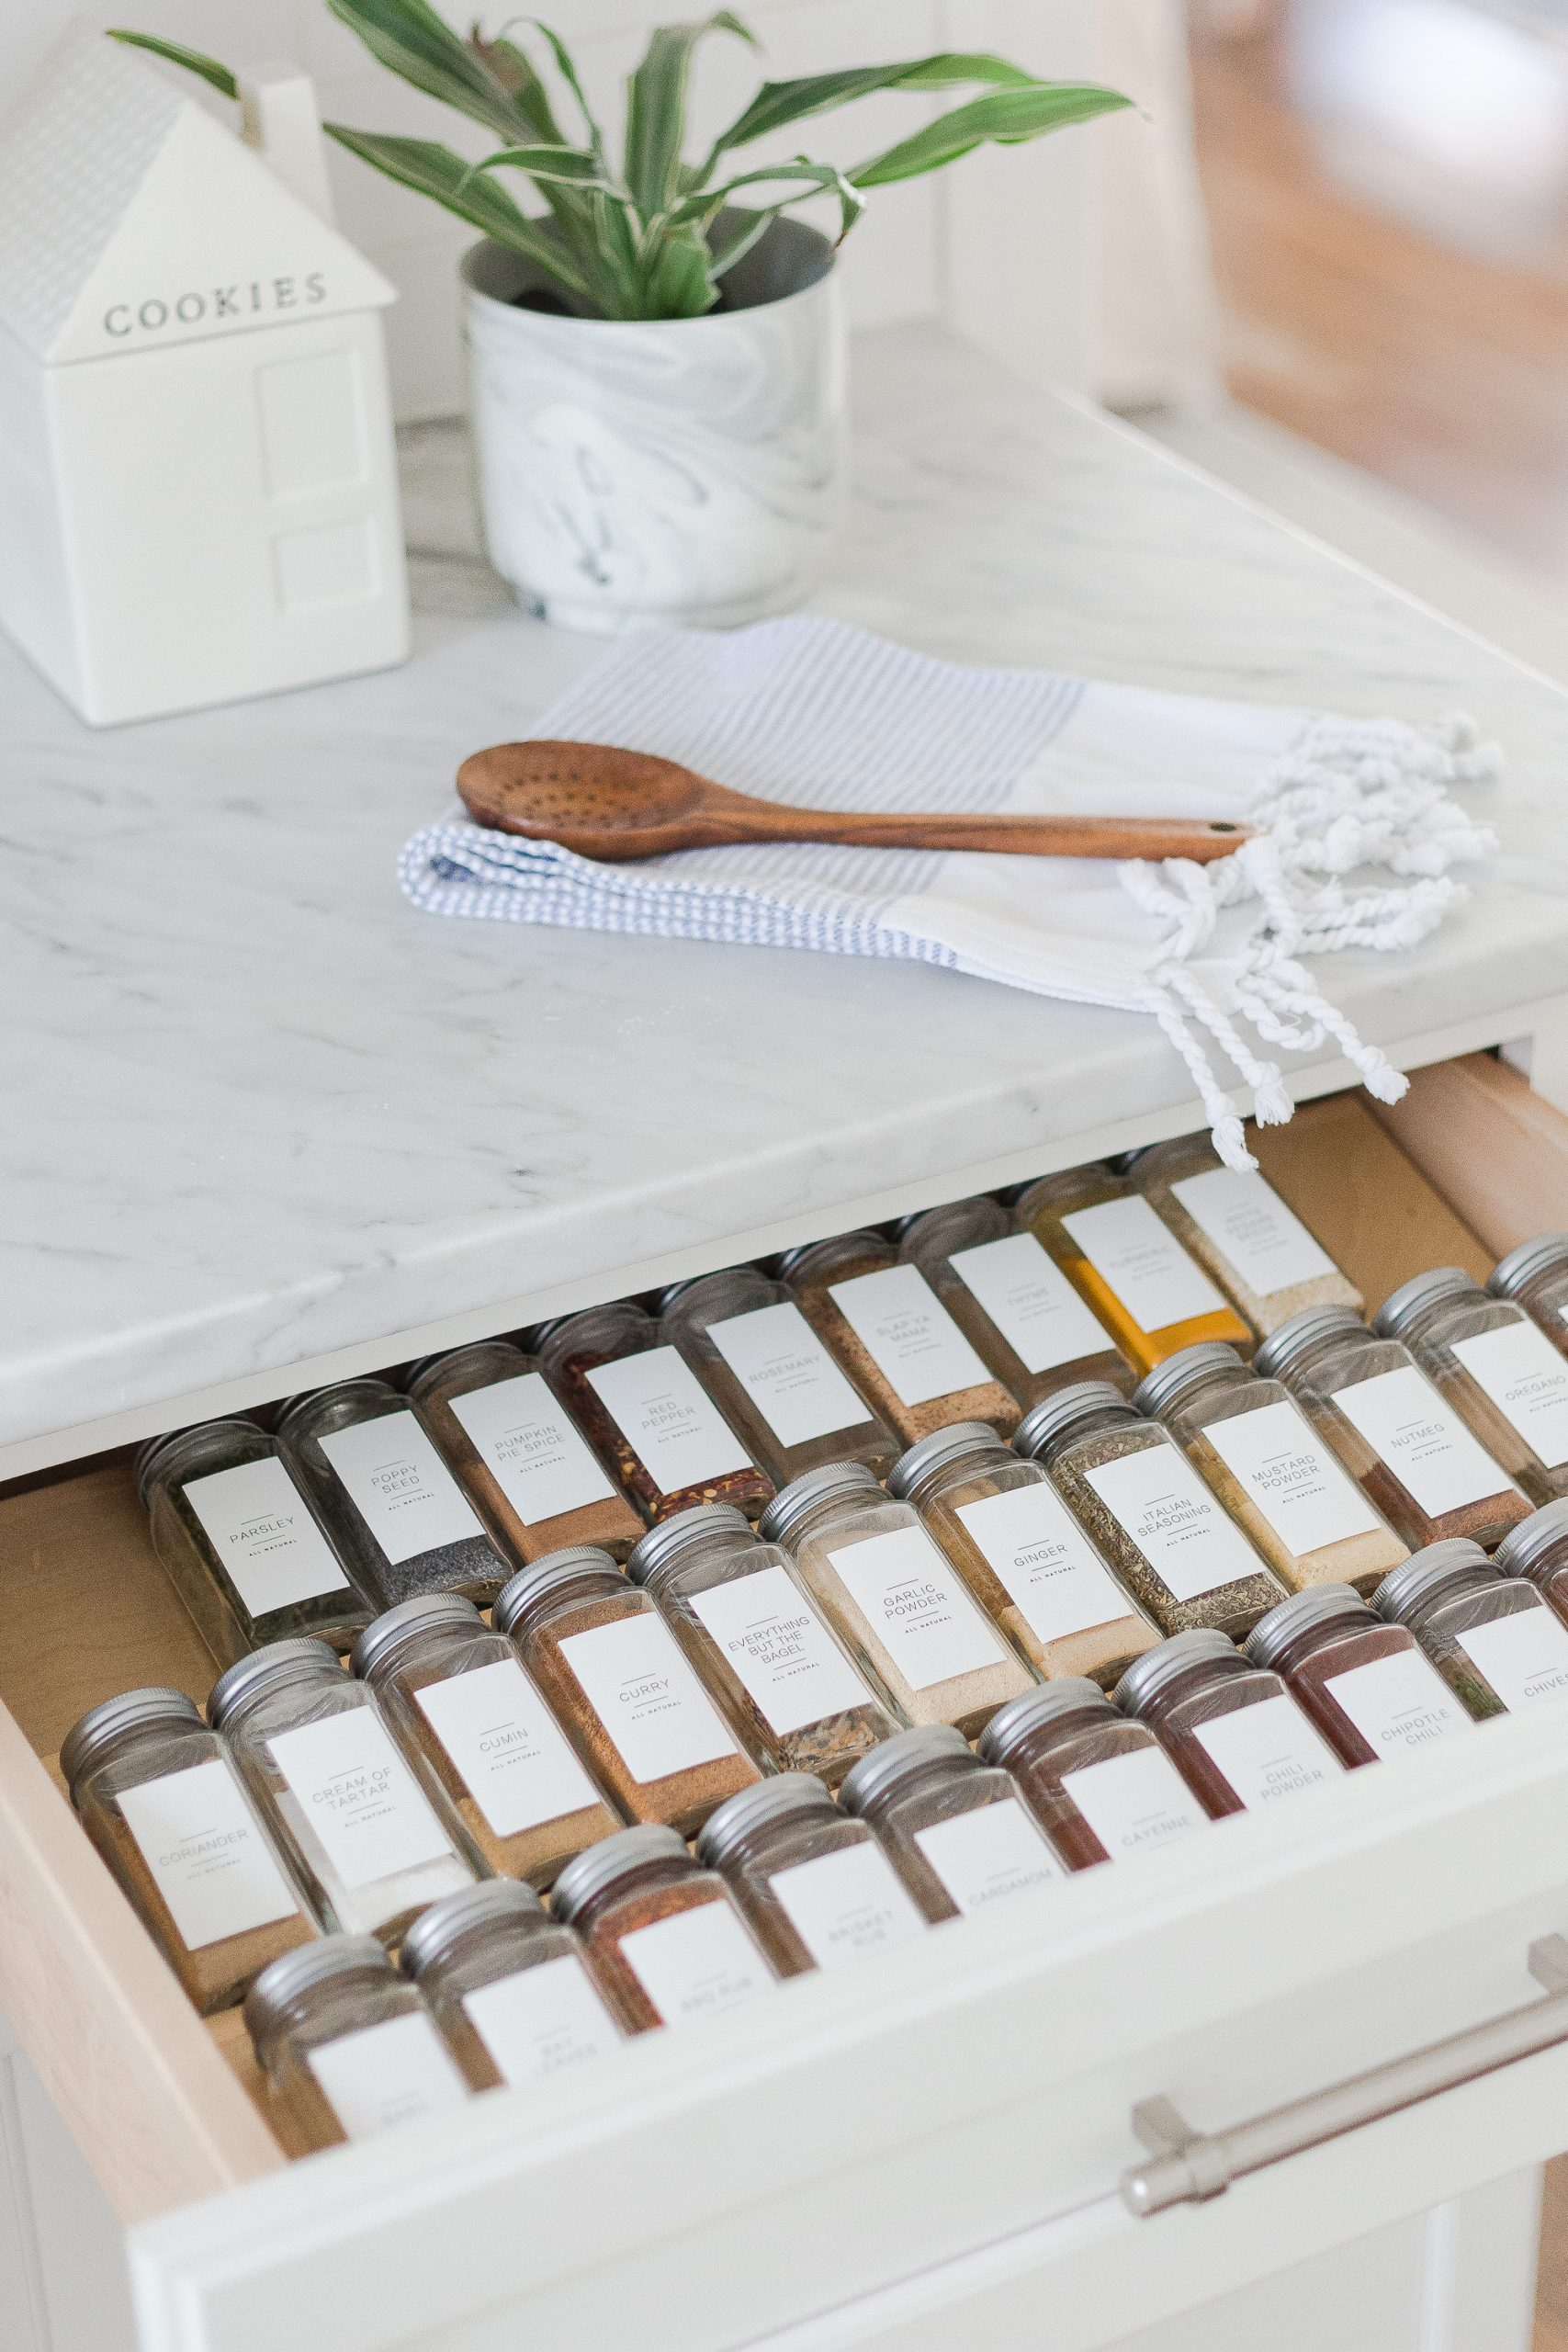 white kitchen with drawer full of spices in clear jars